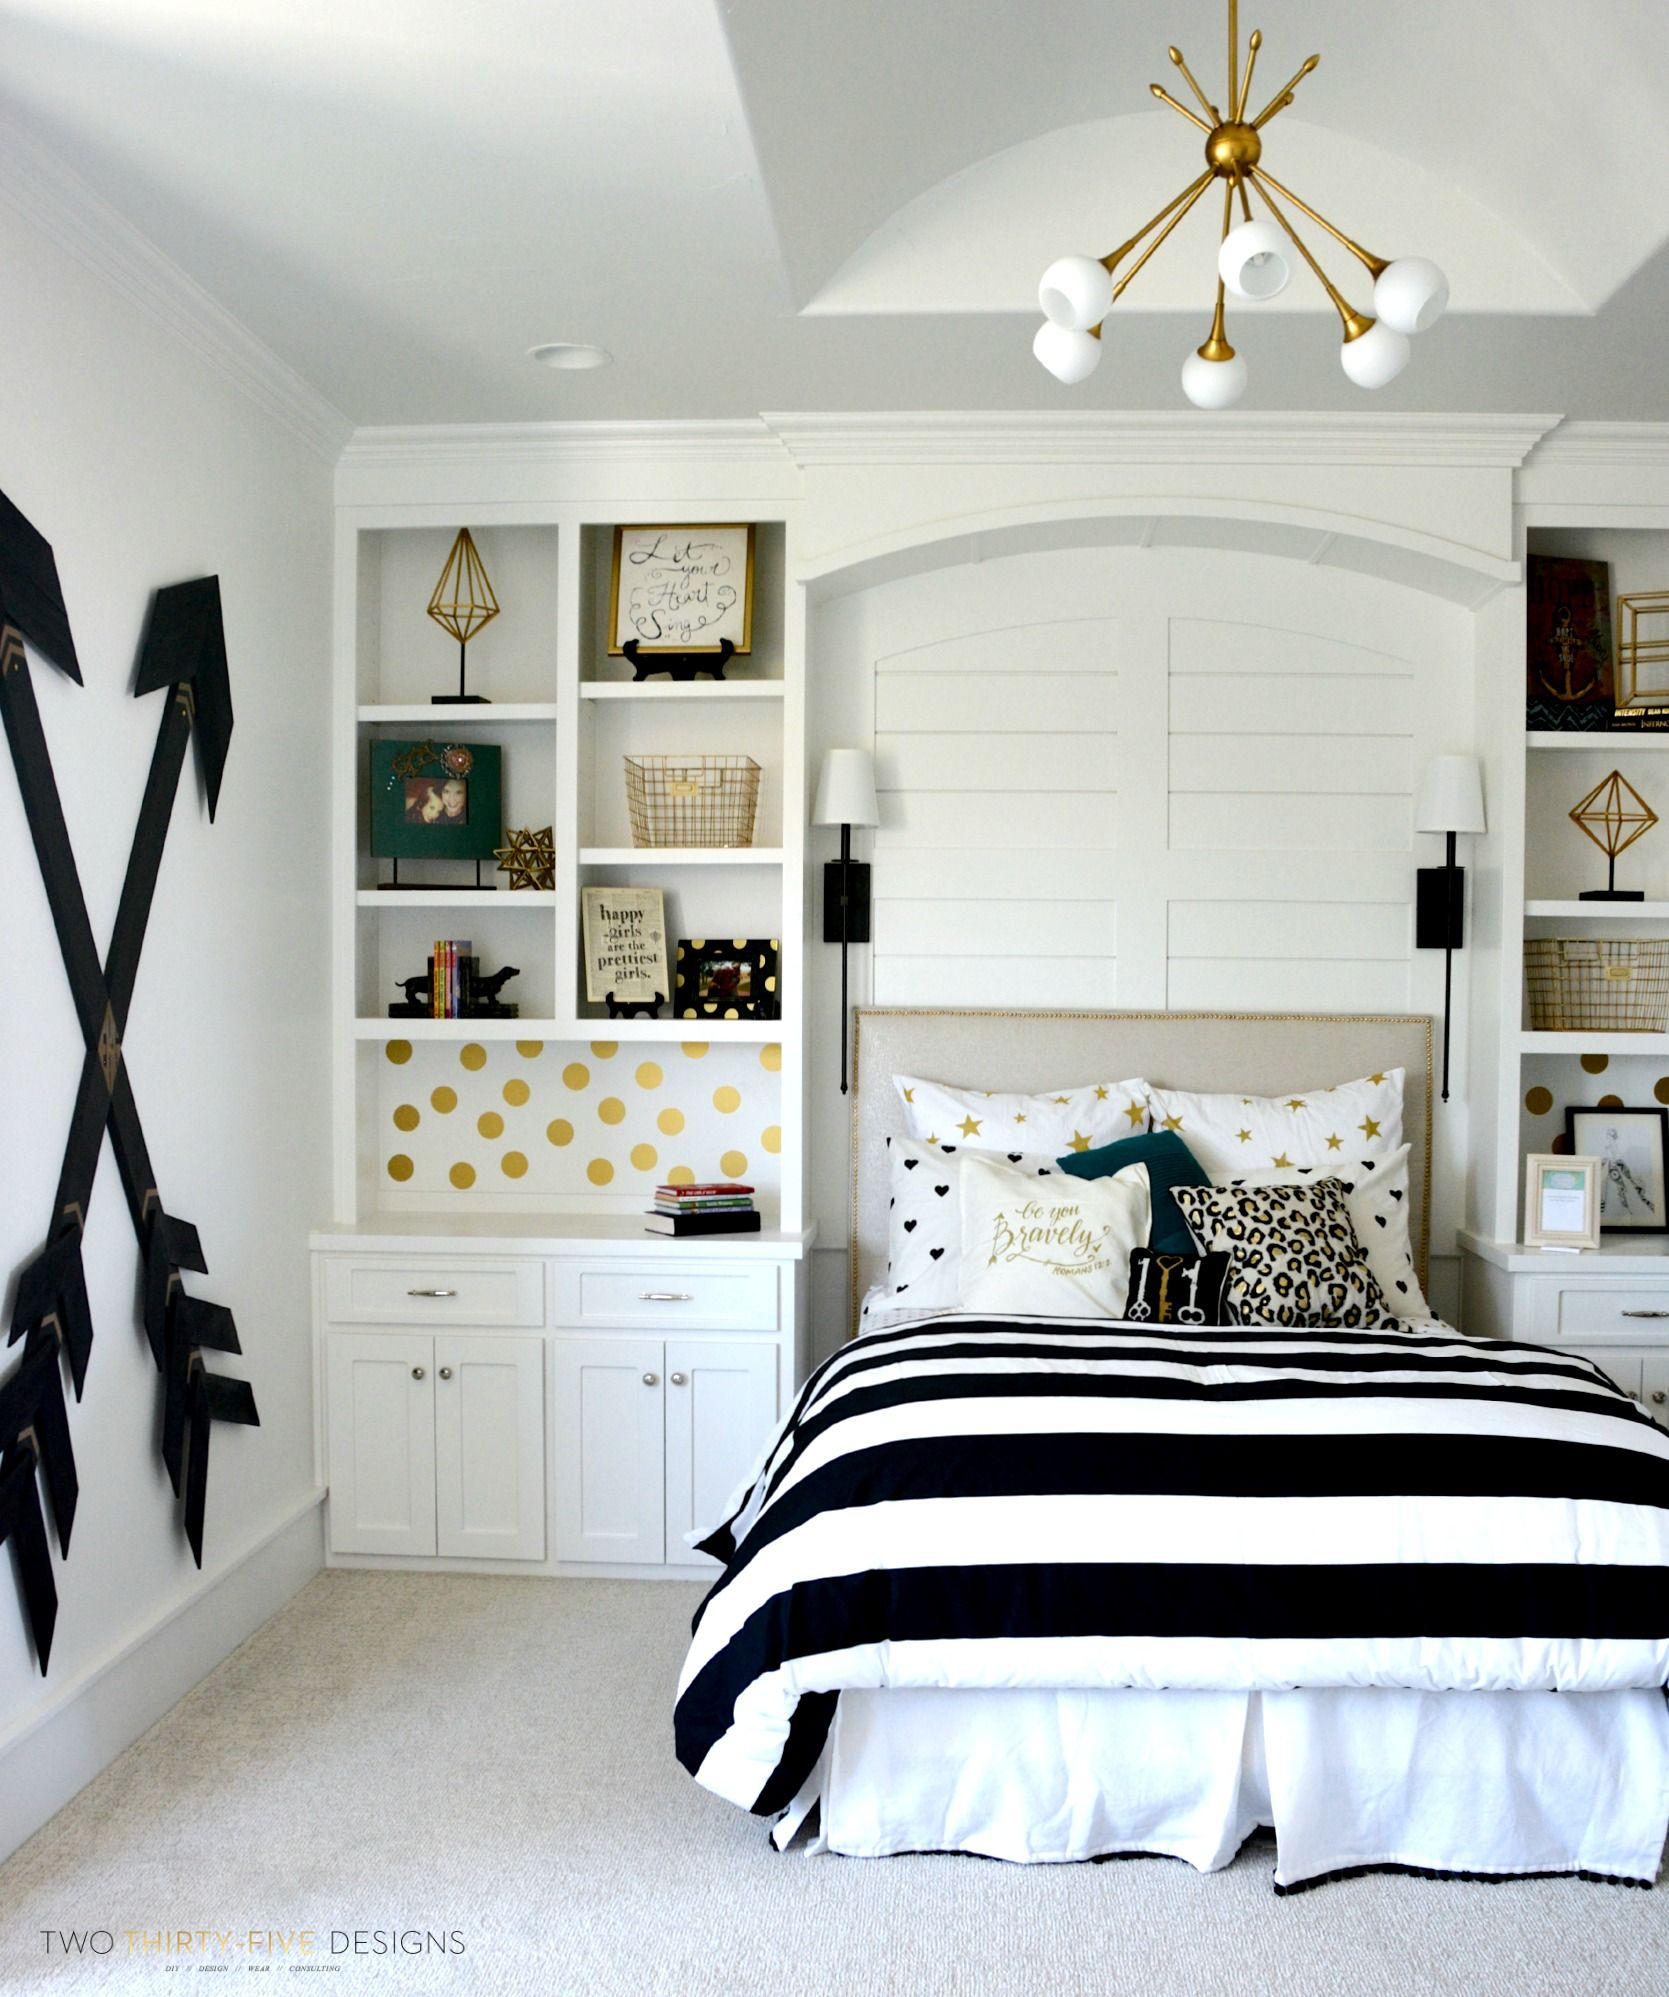 Bedroom designs for girls black - Pottery Barn Teen Girl Bedroom With Wooden Wall Arrows By Two Thirty Five Designs